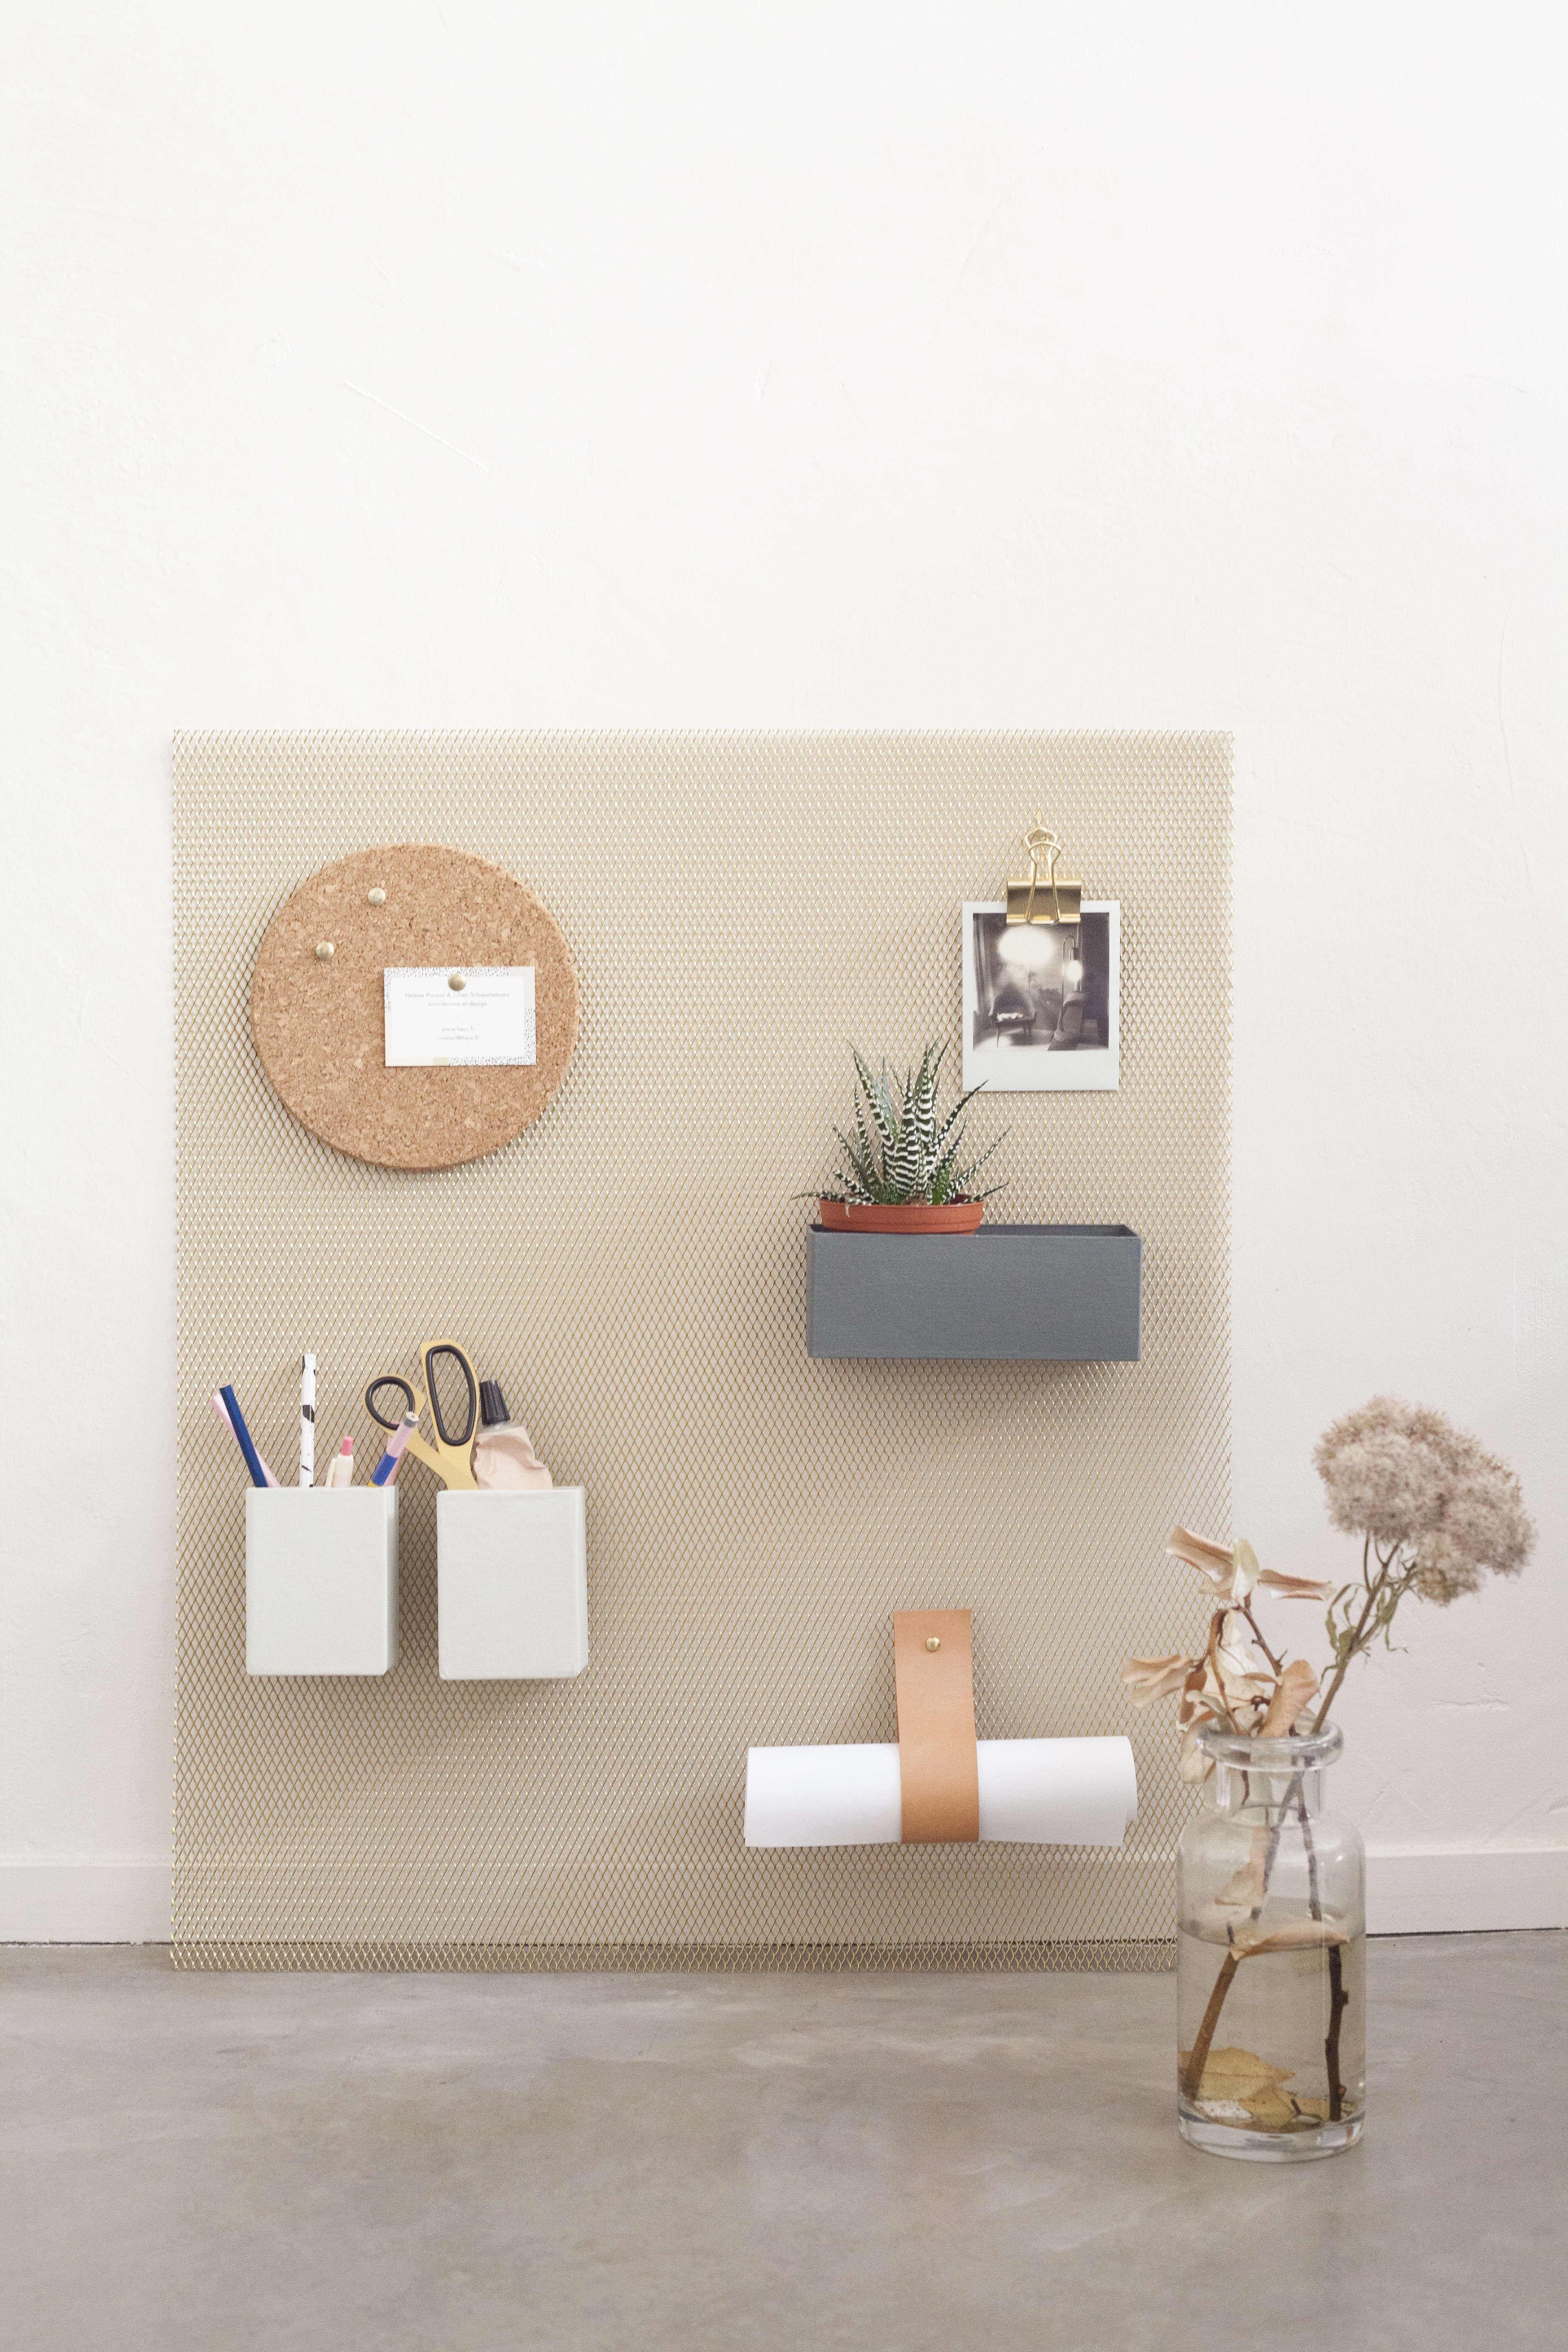 Heju's DIY metal wall organizer for the office and entry. Designed by 25-year-old Paris architects Hélène Pinaud and Julien Schwartzmann.